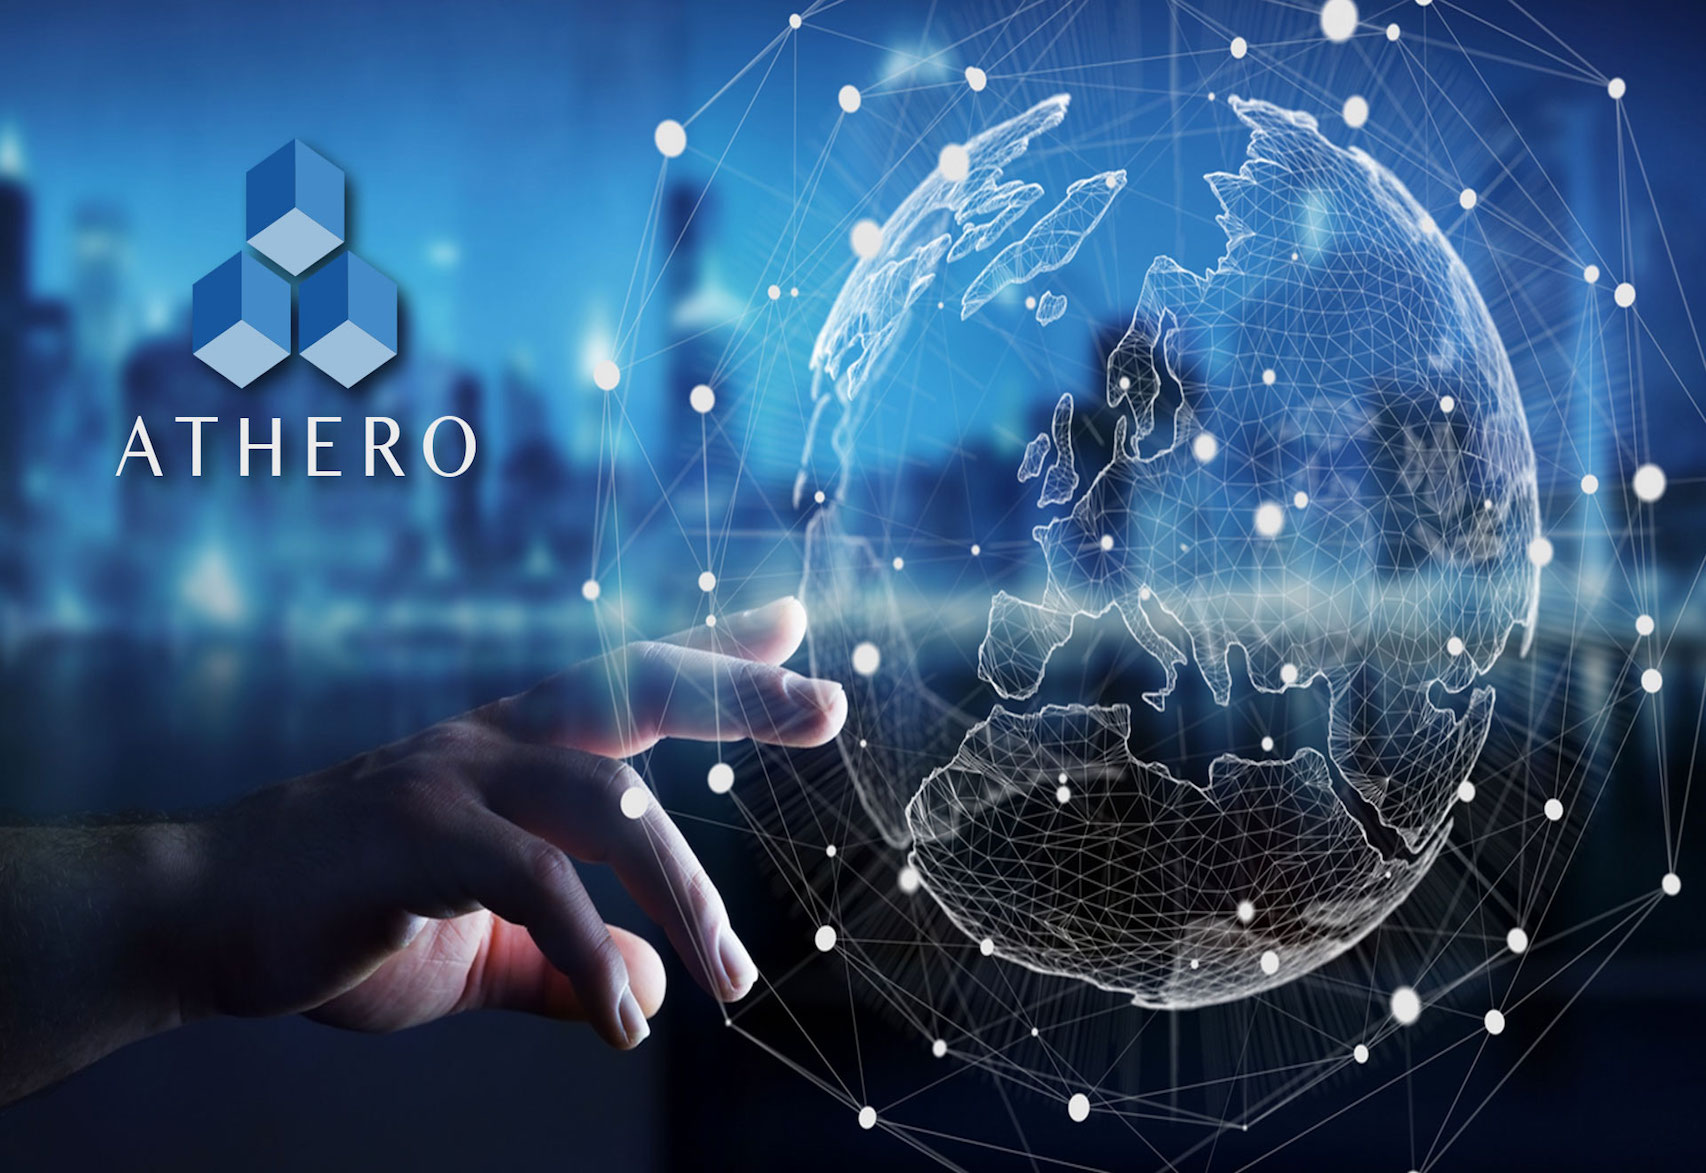 Athero to Bring Together Market Place and Finance Using IoT and Blockchain